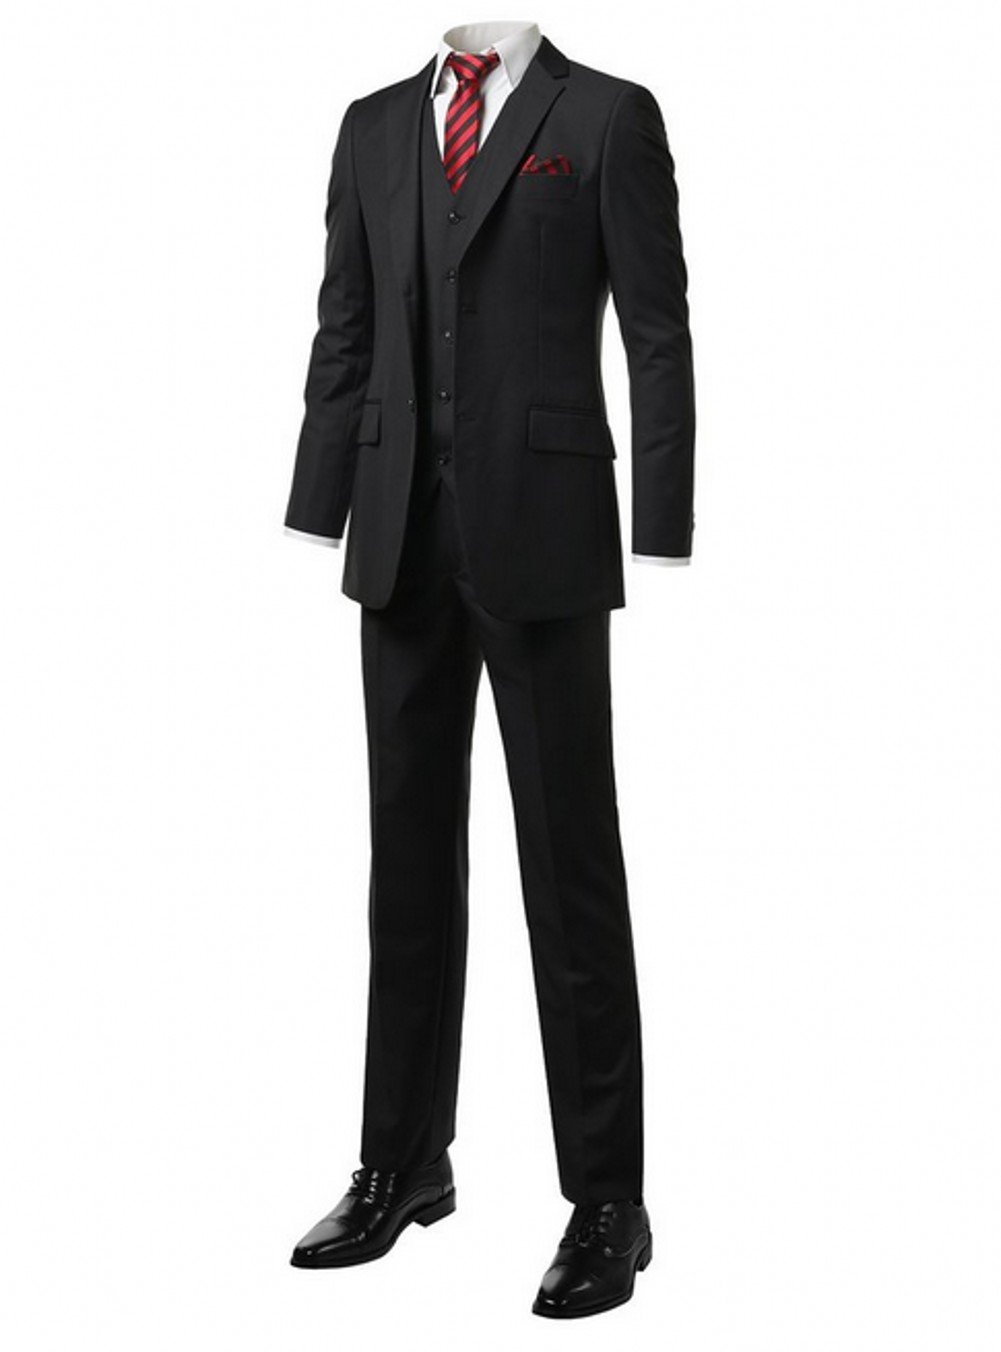 Love Dress Men's Modern Fit 3-Piece Suit Blazer Jacket Tux Vest & Trousers Black L